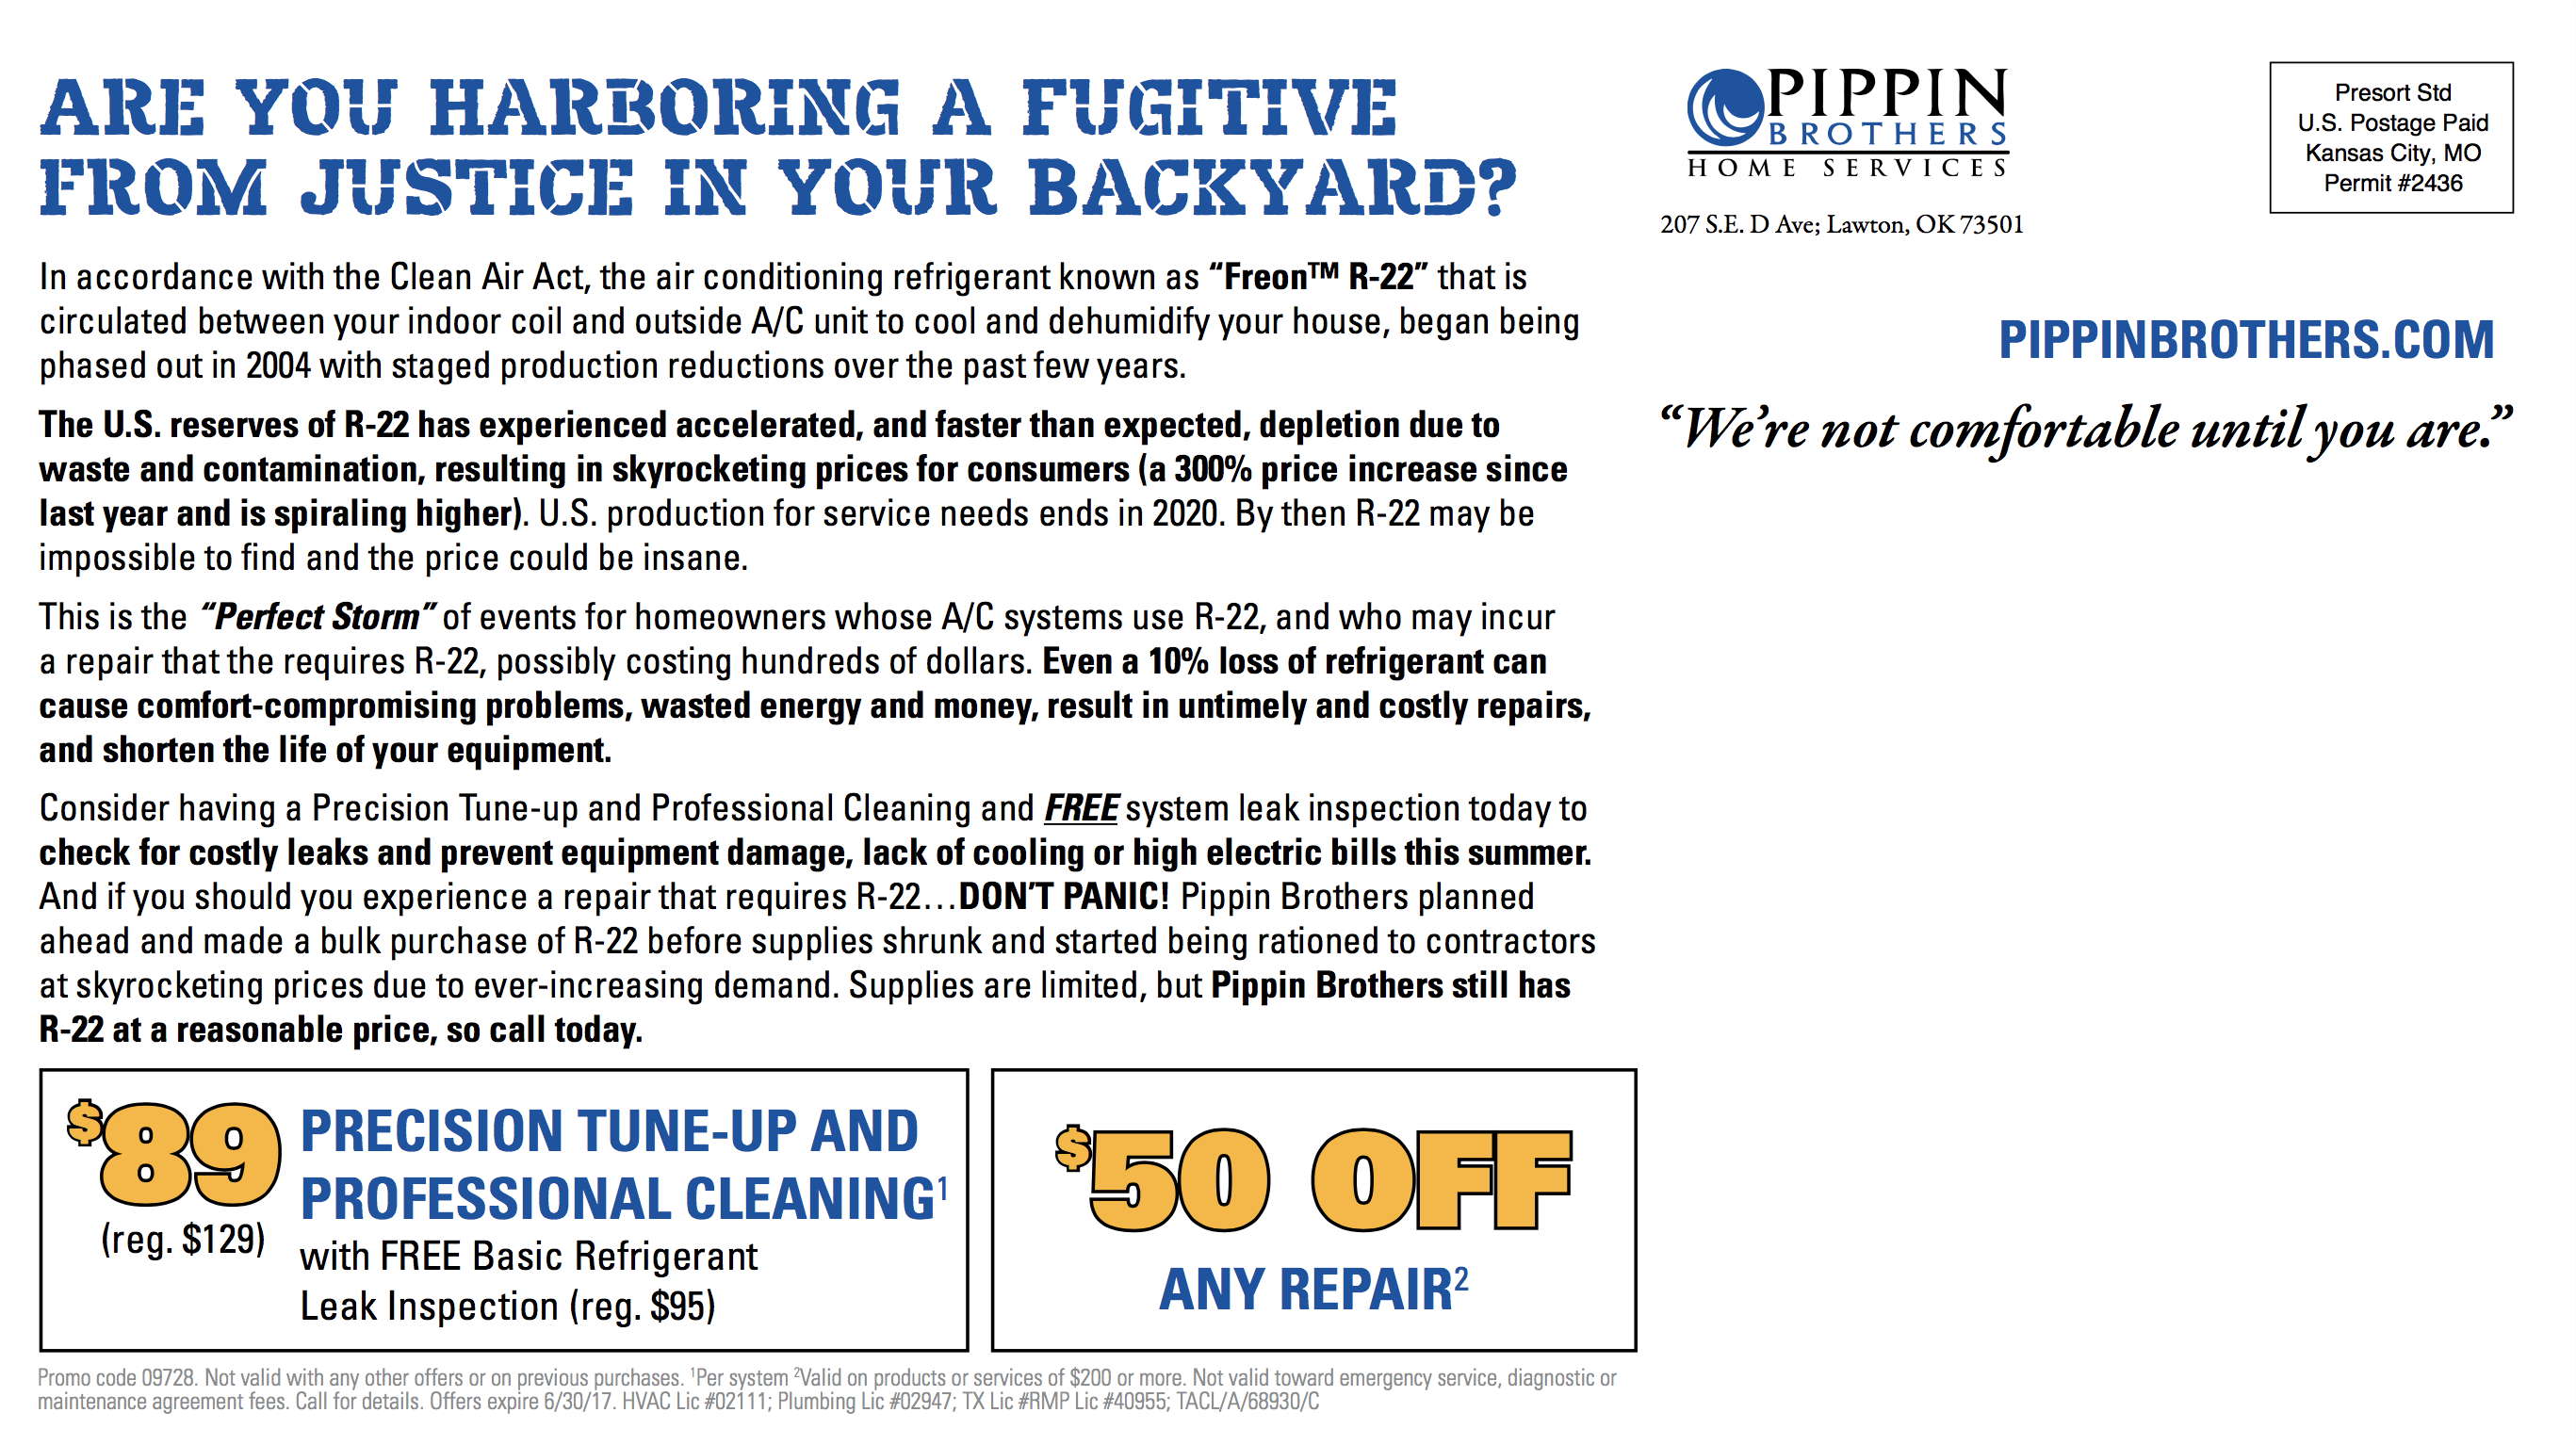 Pippin Brothers offers Air Conditioning Tune-Up & Freon 22 Check for homeowners in Lawton, Oklahoma and Wichita Falls, Texas